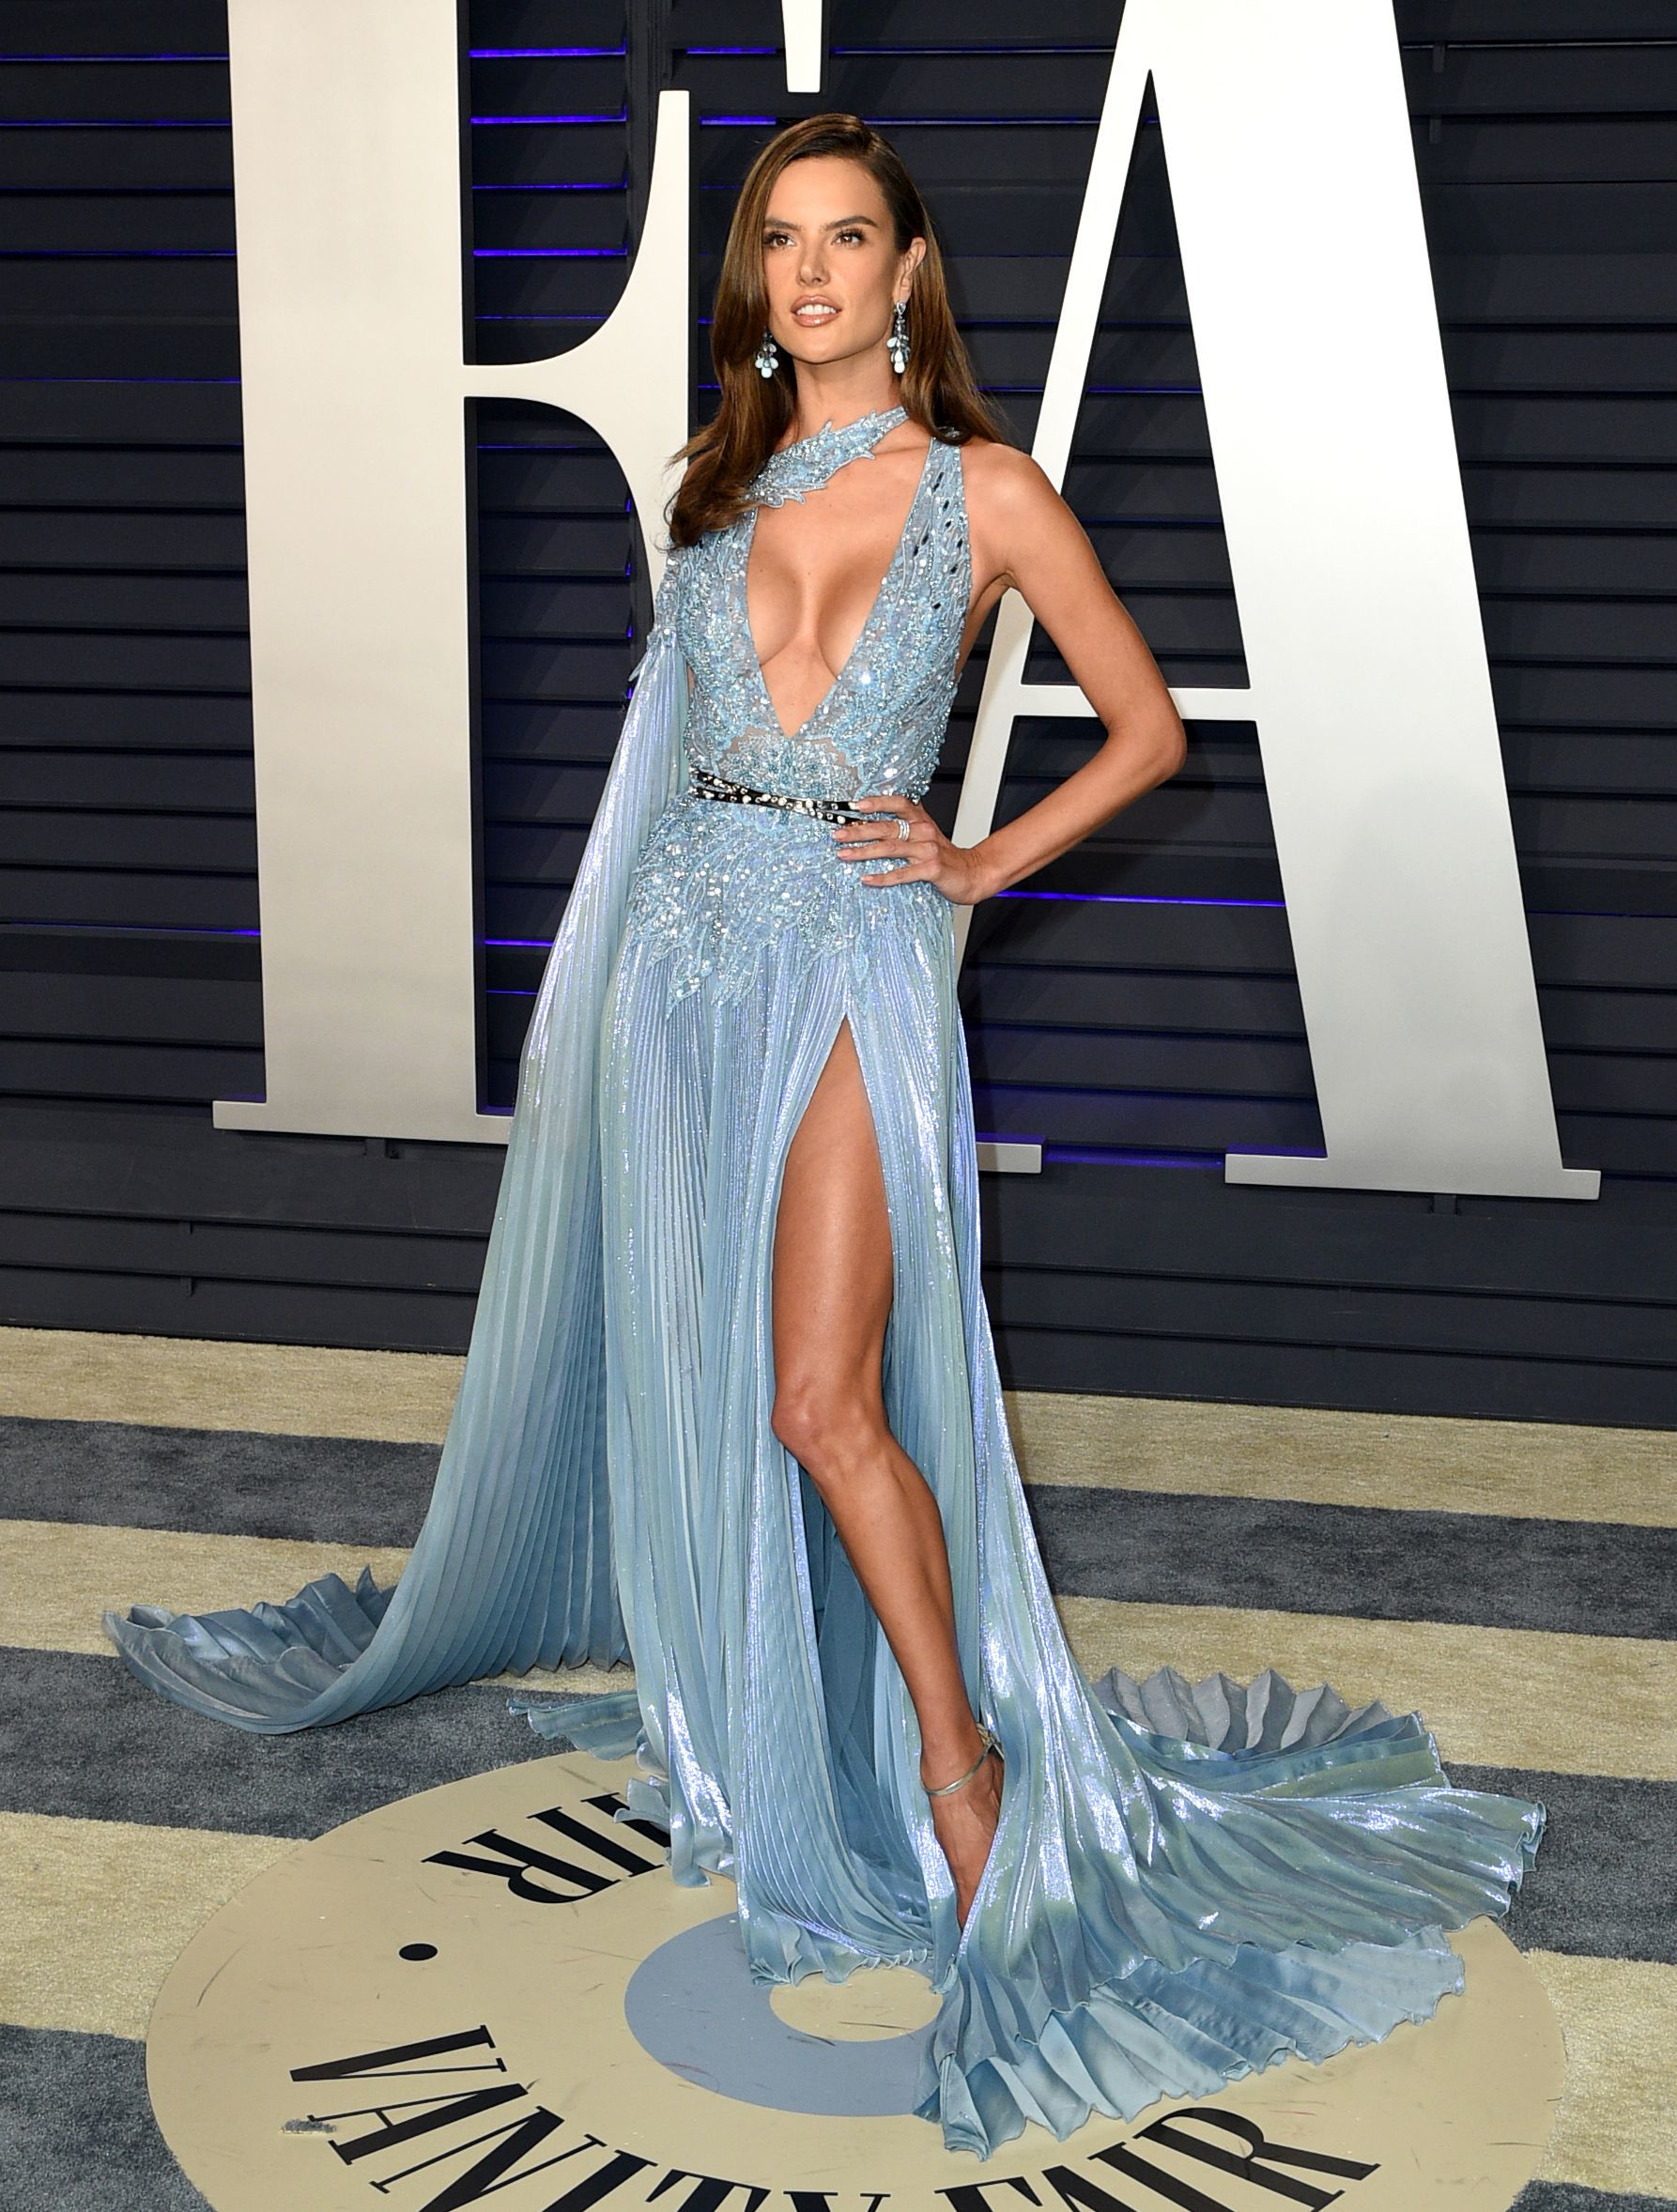 Alessandra Ambrosio attends the Vanity Fair Oscar Party in Beverly Hills on Feb. 24, 2019.